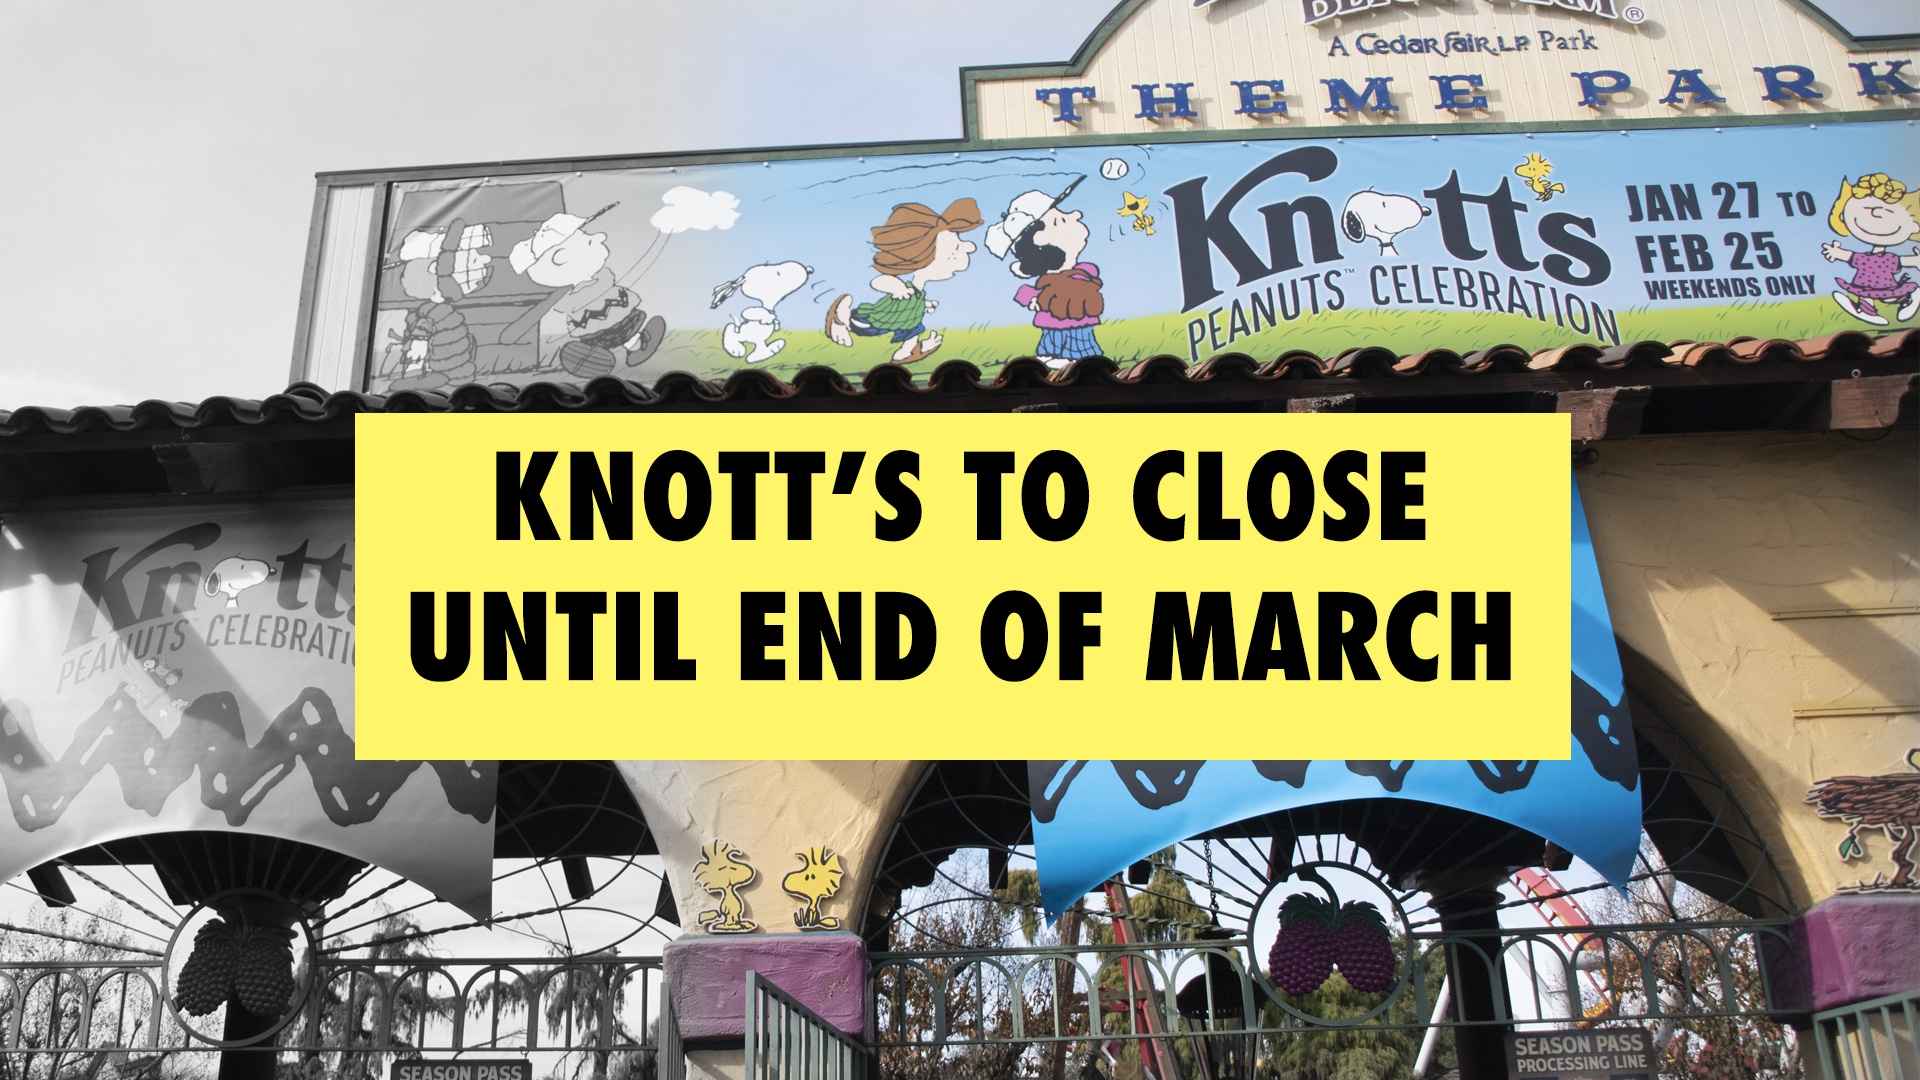 Knott's Berry Farm to Close and Hotel to Stay Open Through End of March for COVID-19 Concerns